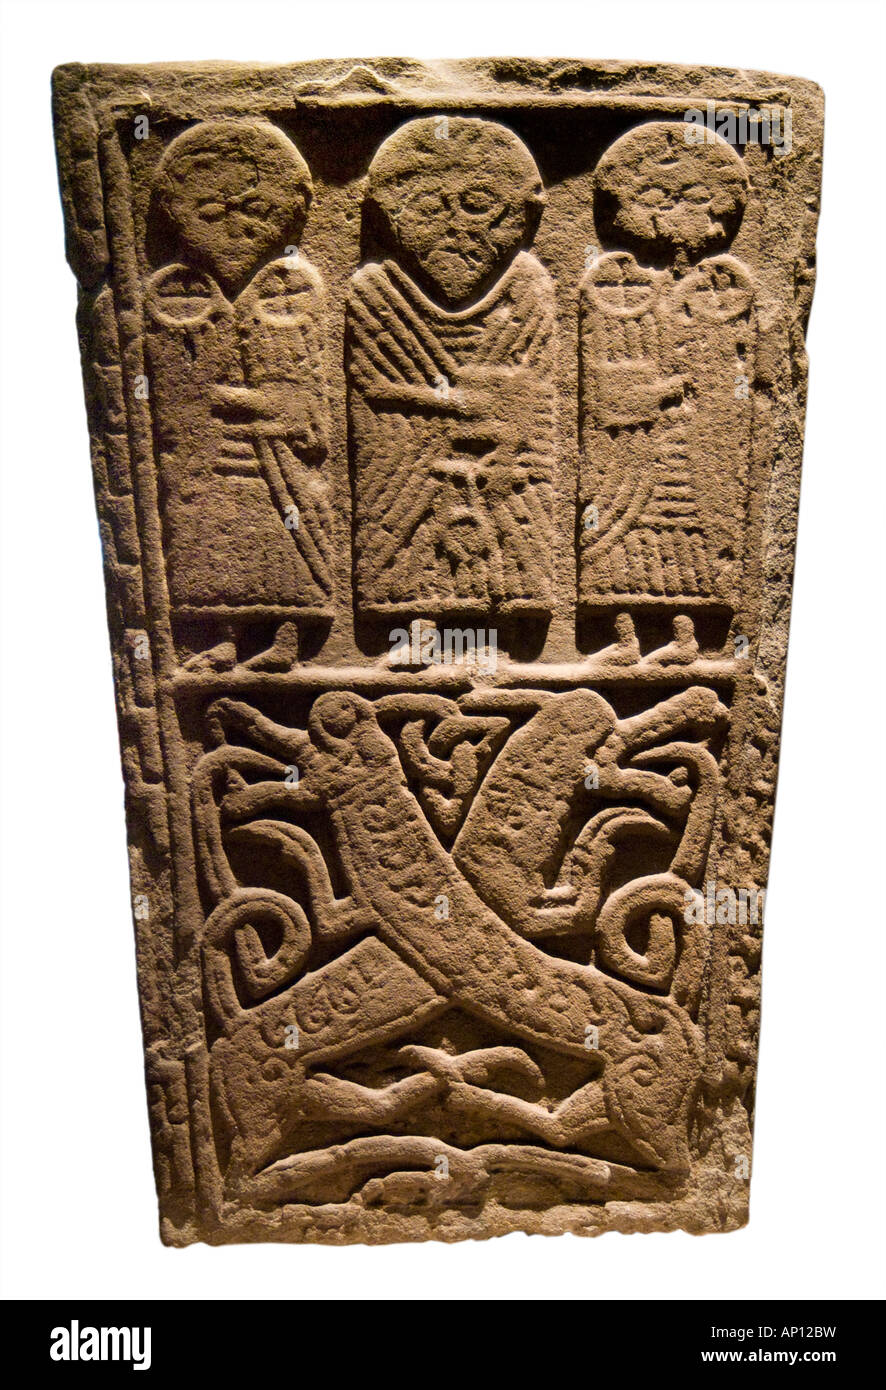 Stone tablet saint scotland scot scottish celt celtic